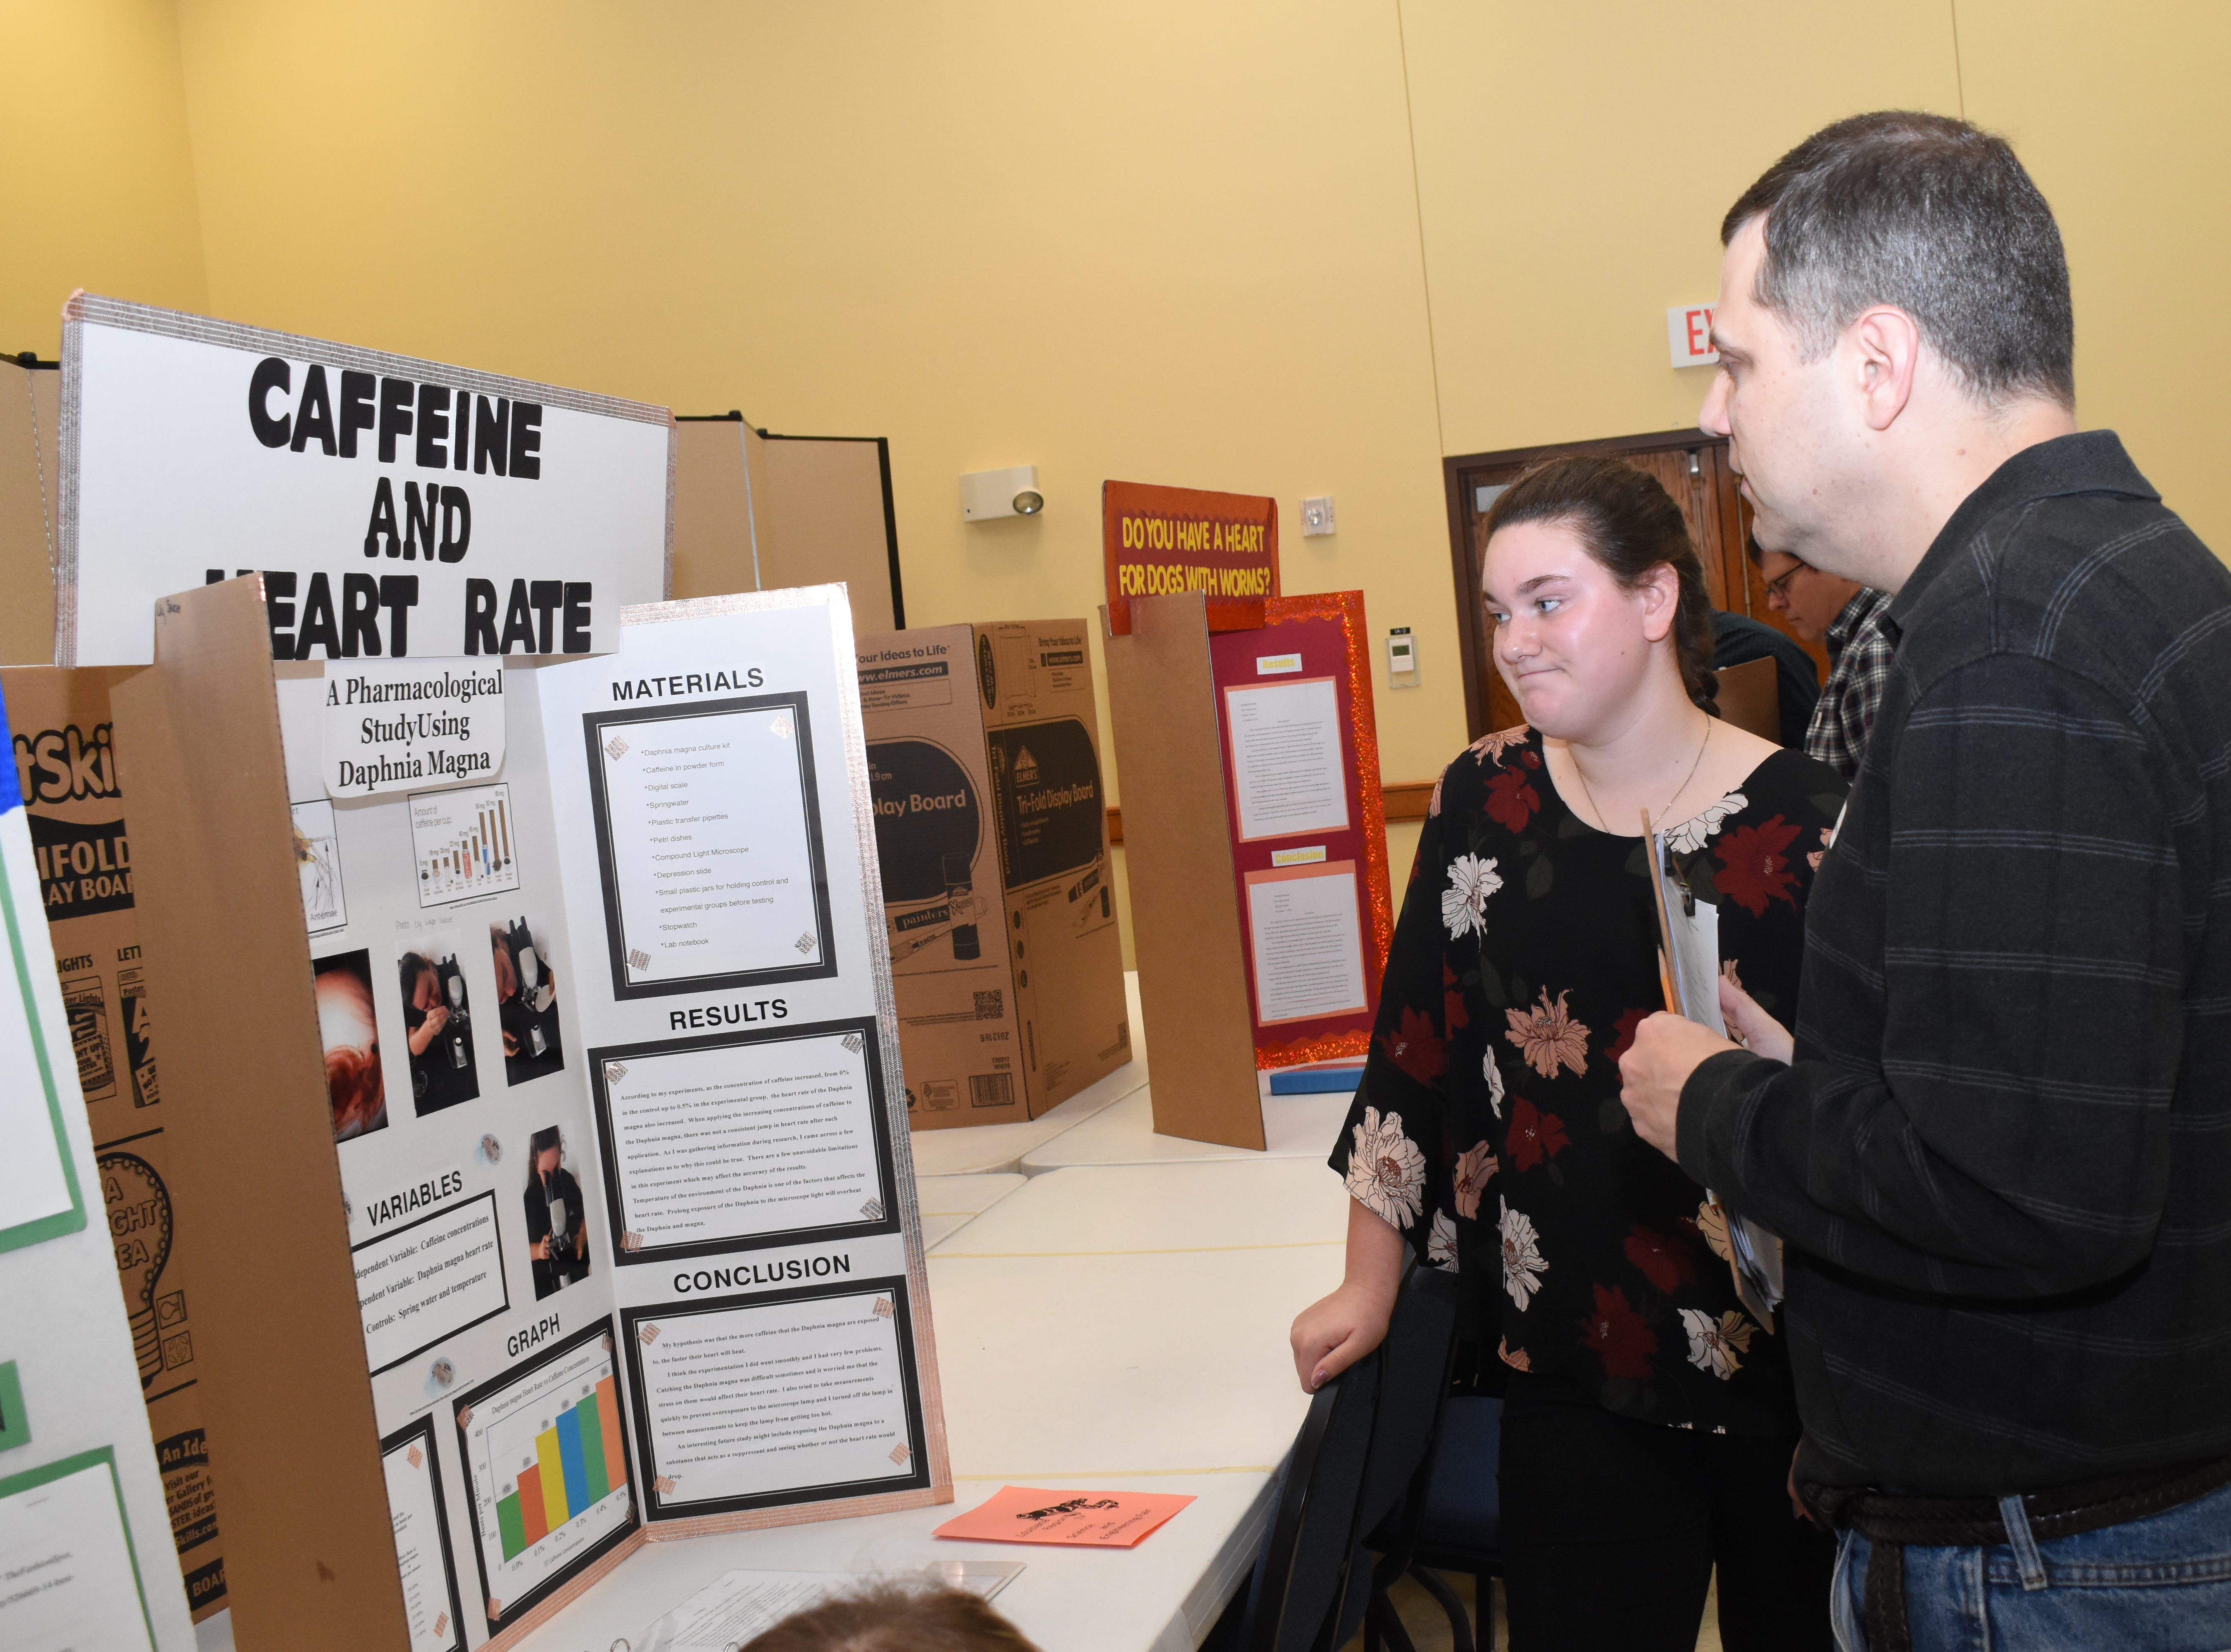 The Louisiana Region IV Science and Engineering Fair was held Saturday, Feb. 16, 2019 at Louisiana State University of Alexandria. Students from Grant, Avoyelles, and Rapides parishes competed in numerous categories. Students displayed project boards and presented experiments to the judges.